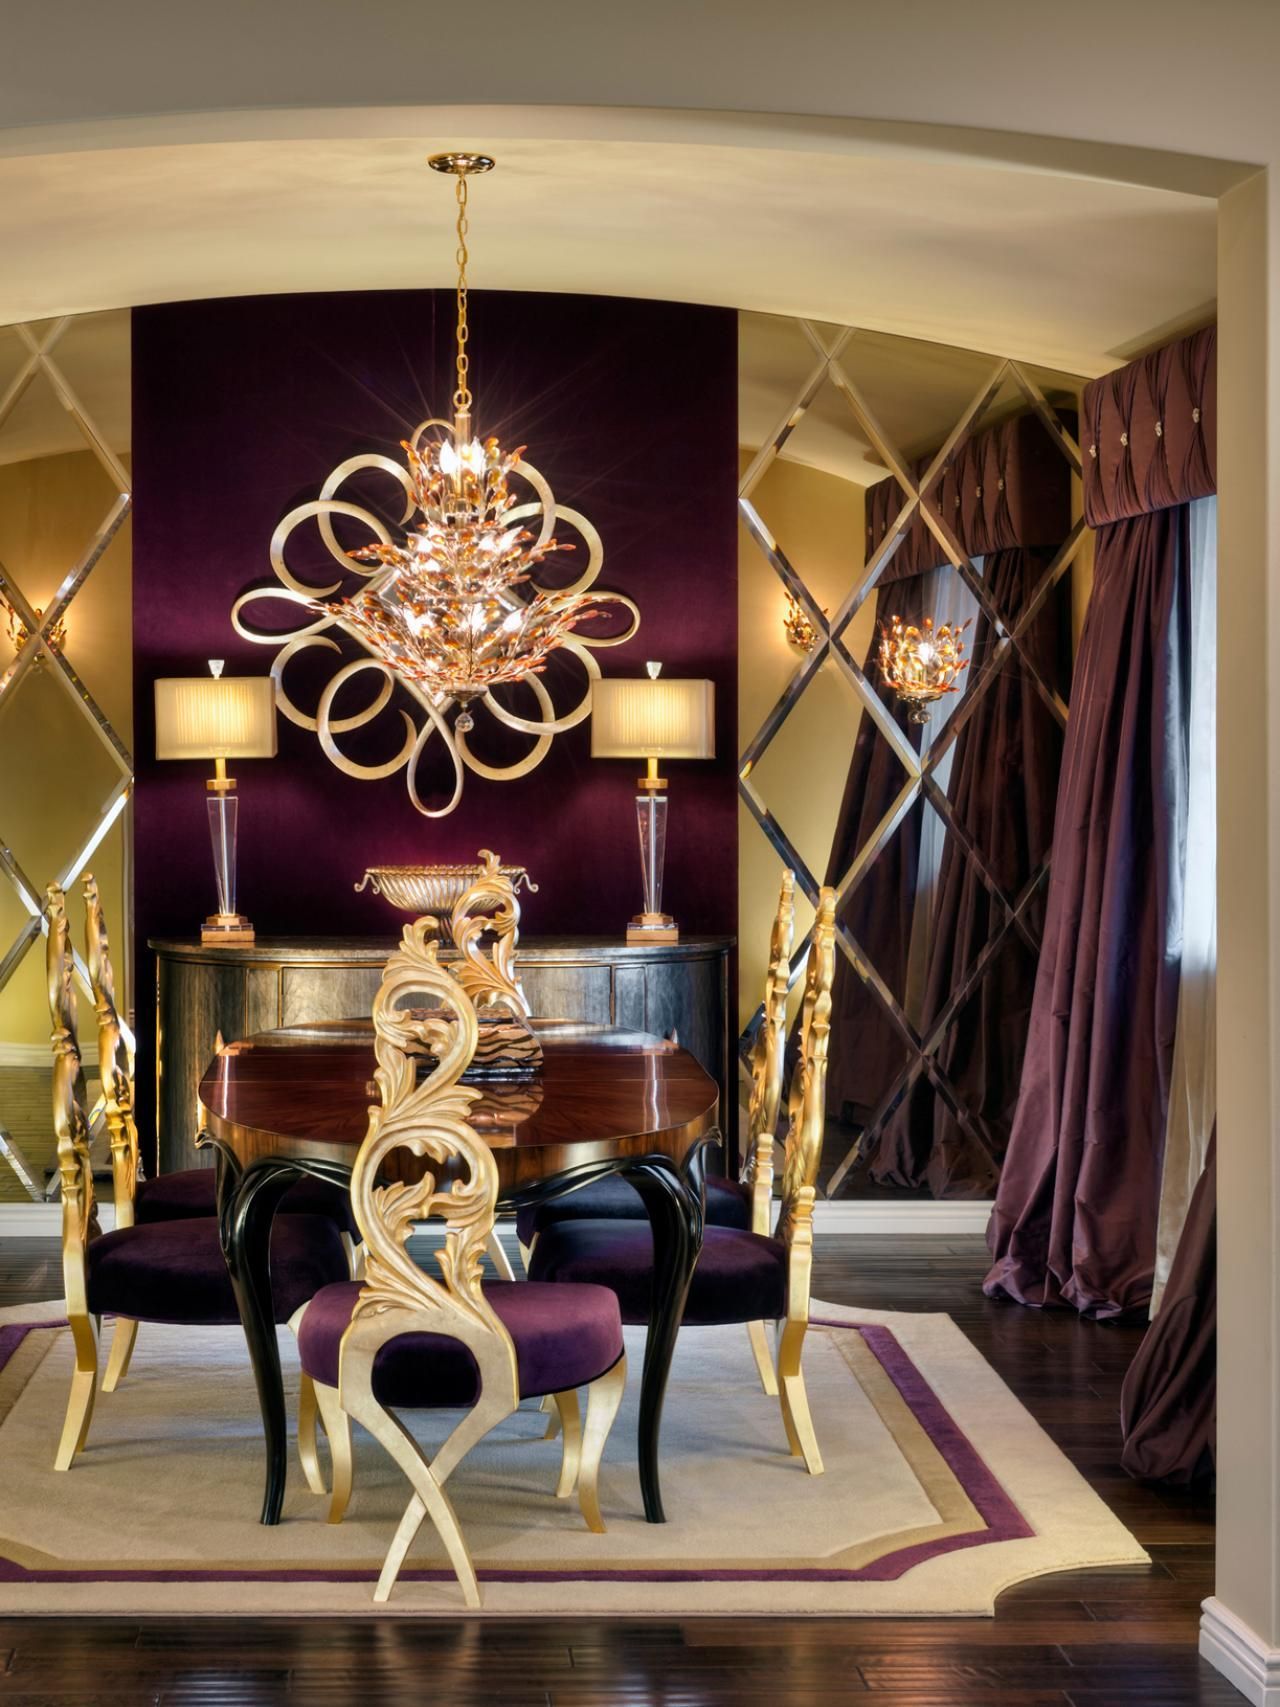 This opulent dining room incorporates purple and gold accents in its